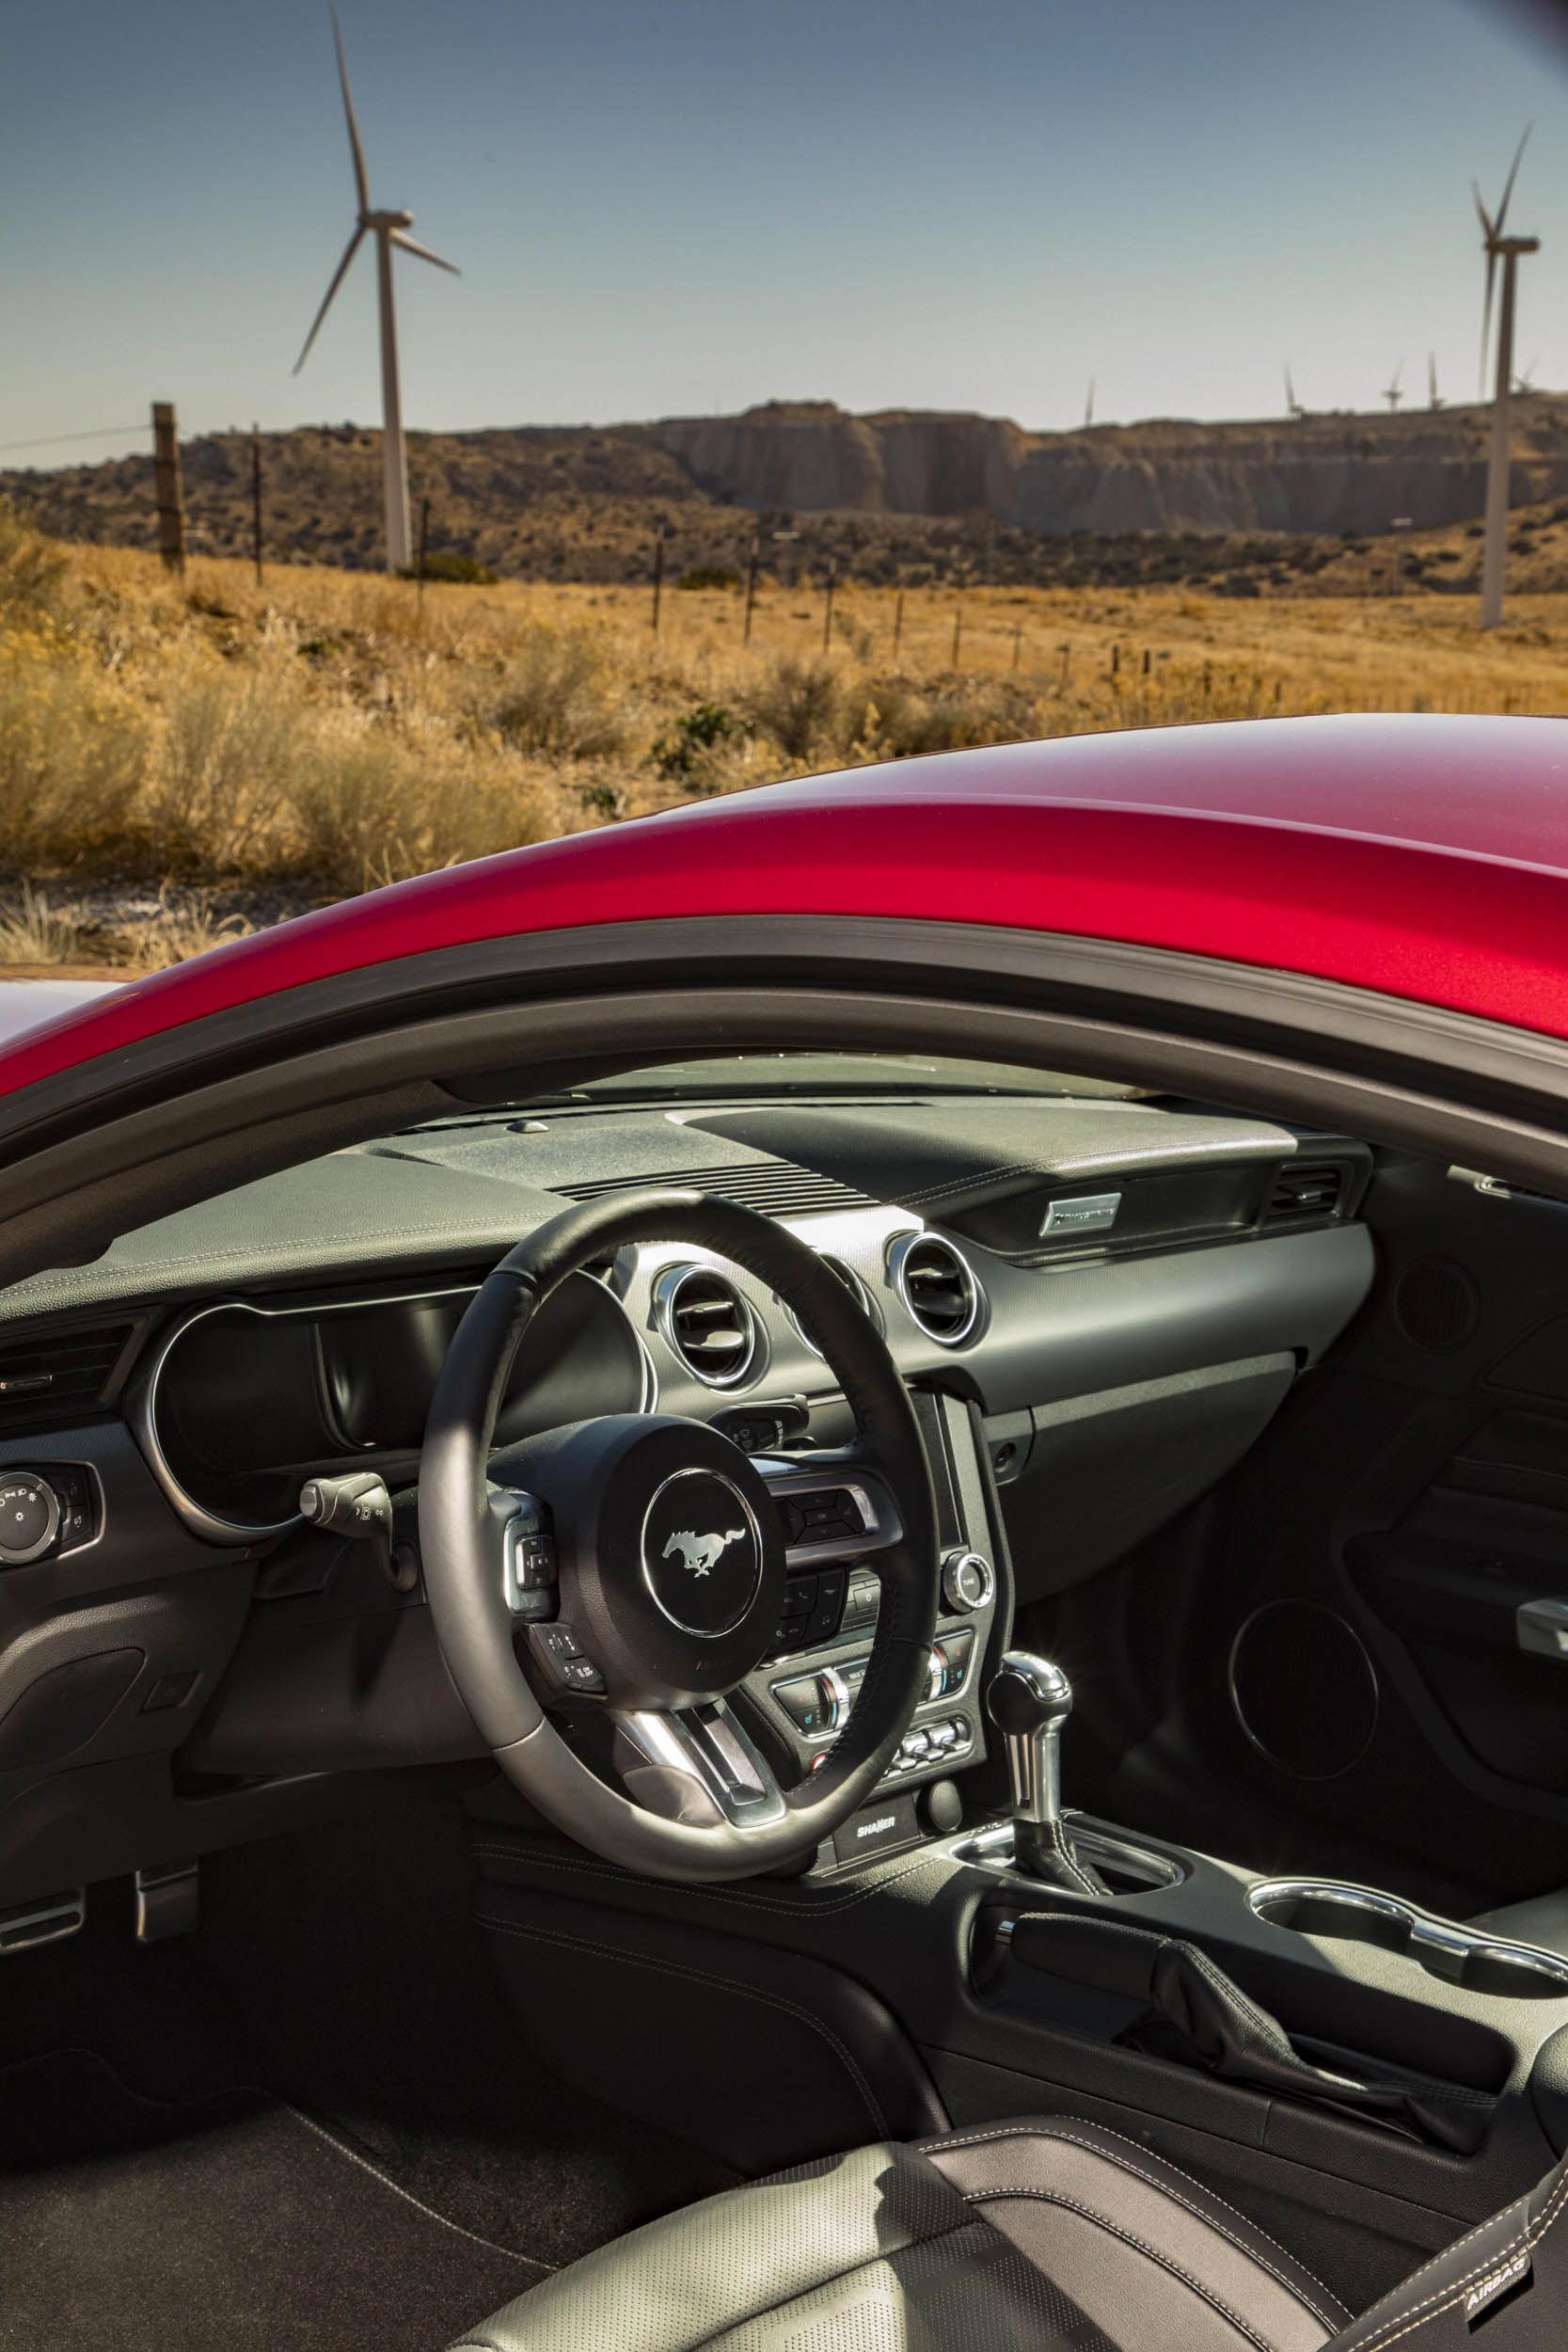 2018 Ford Mustang GT through window interior